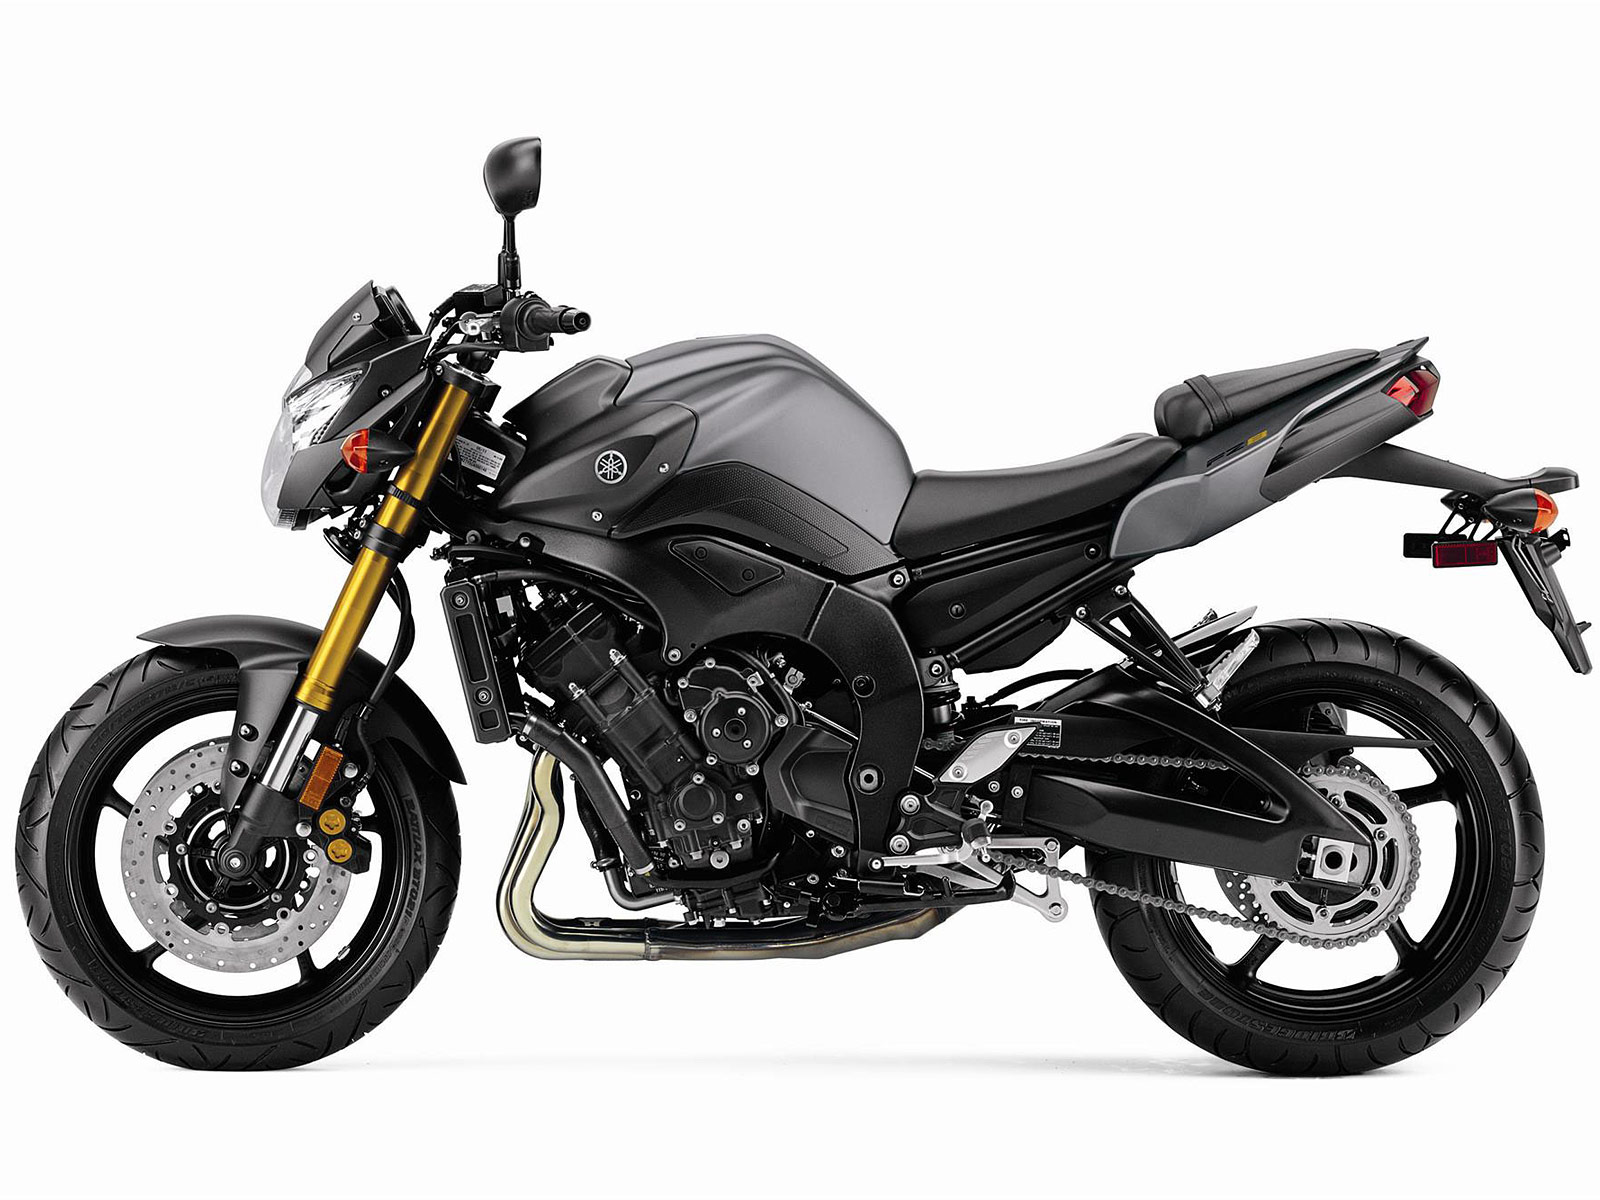 2012 yamaha fz8 motorcycle insurance information. Black Bedroom Furniture Sets. Home Design Ideas